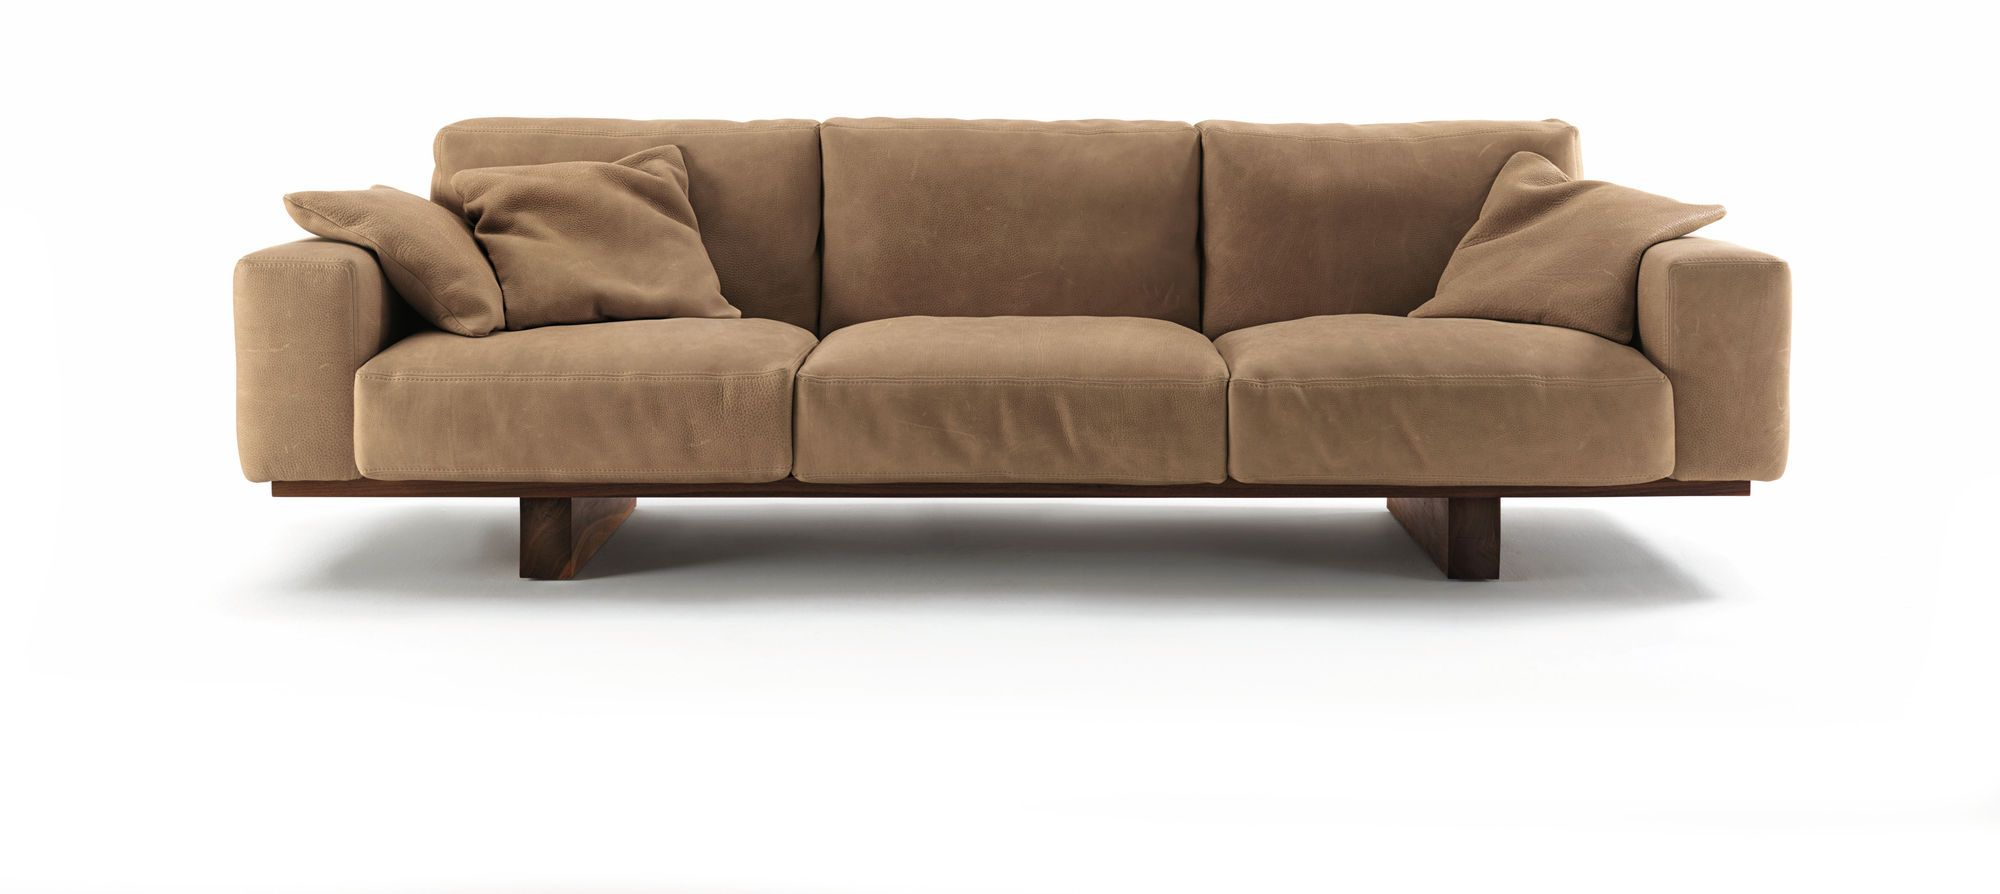 R1920 Www Riva1920 It Utah Sofa